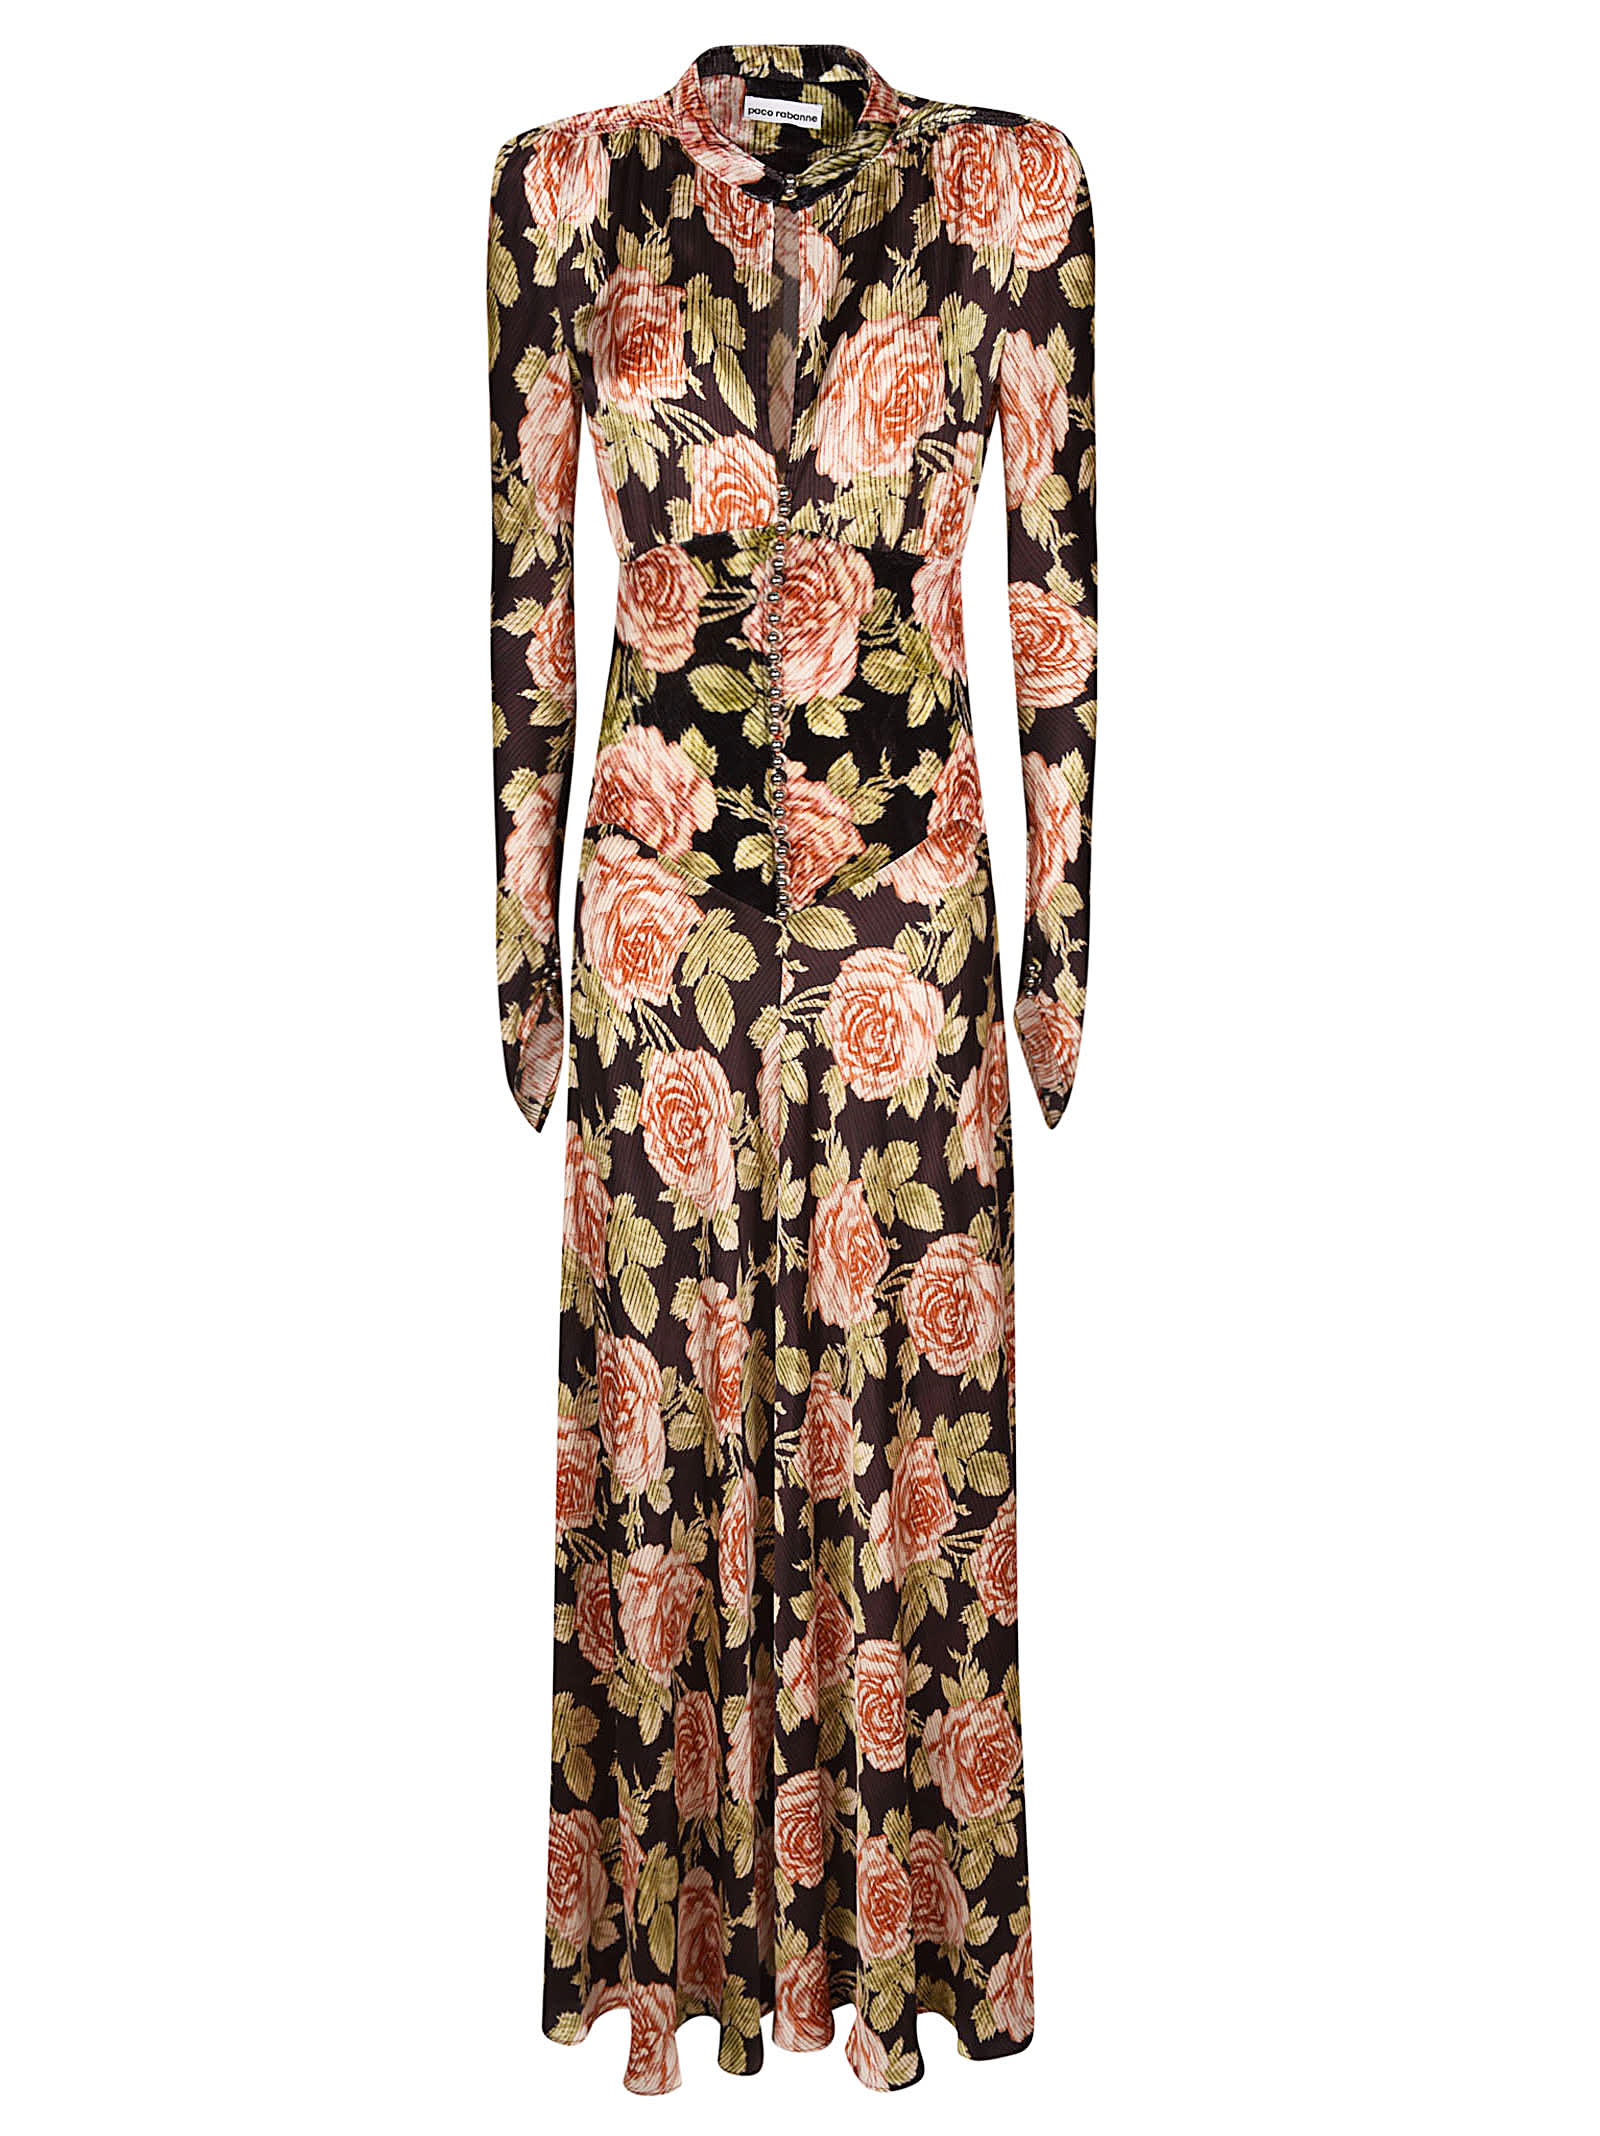 Paco Rabanne Floral Dress